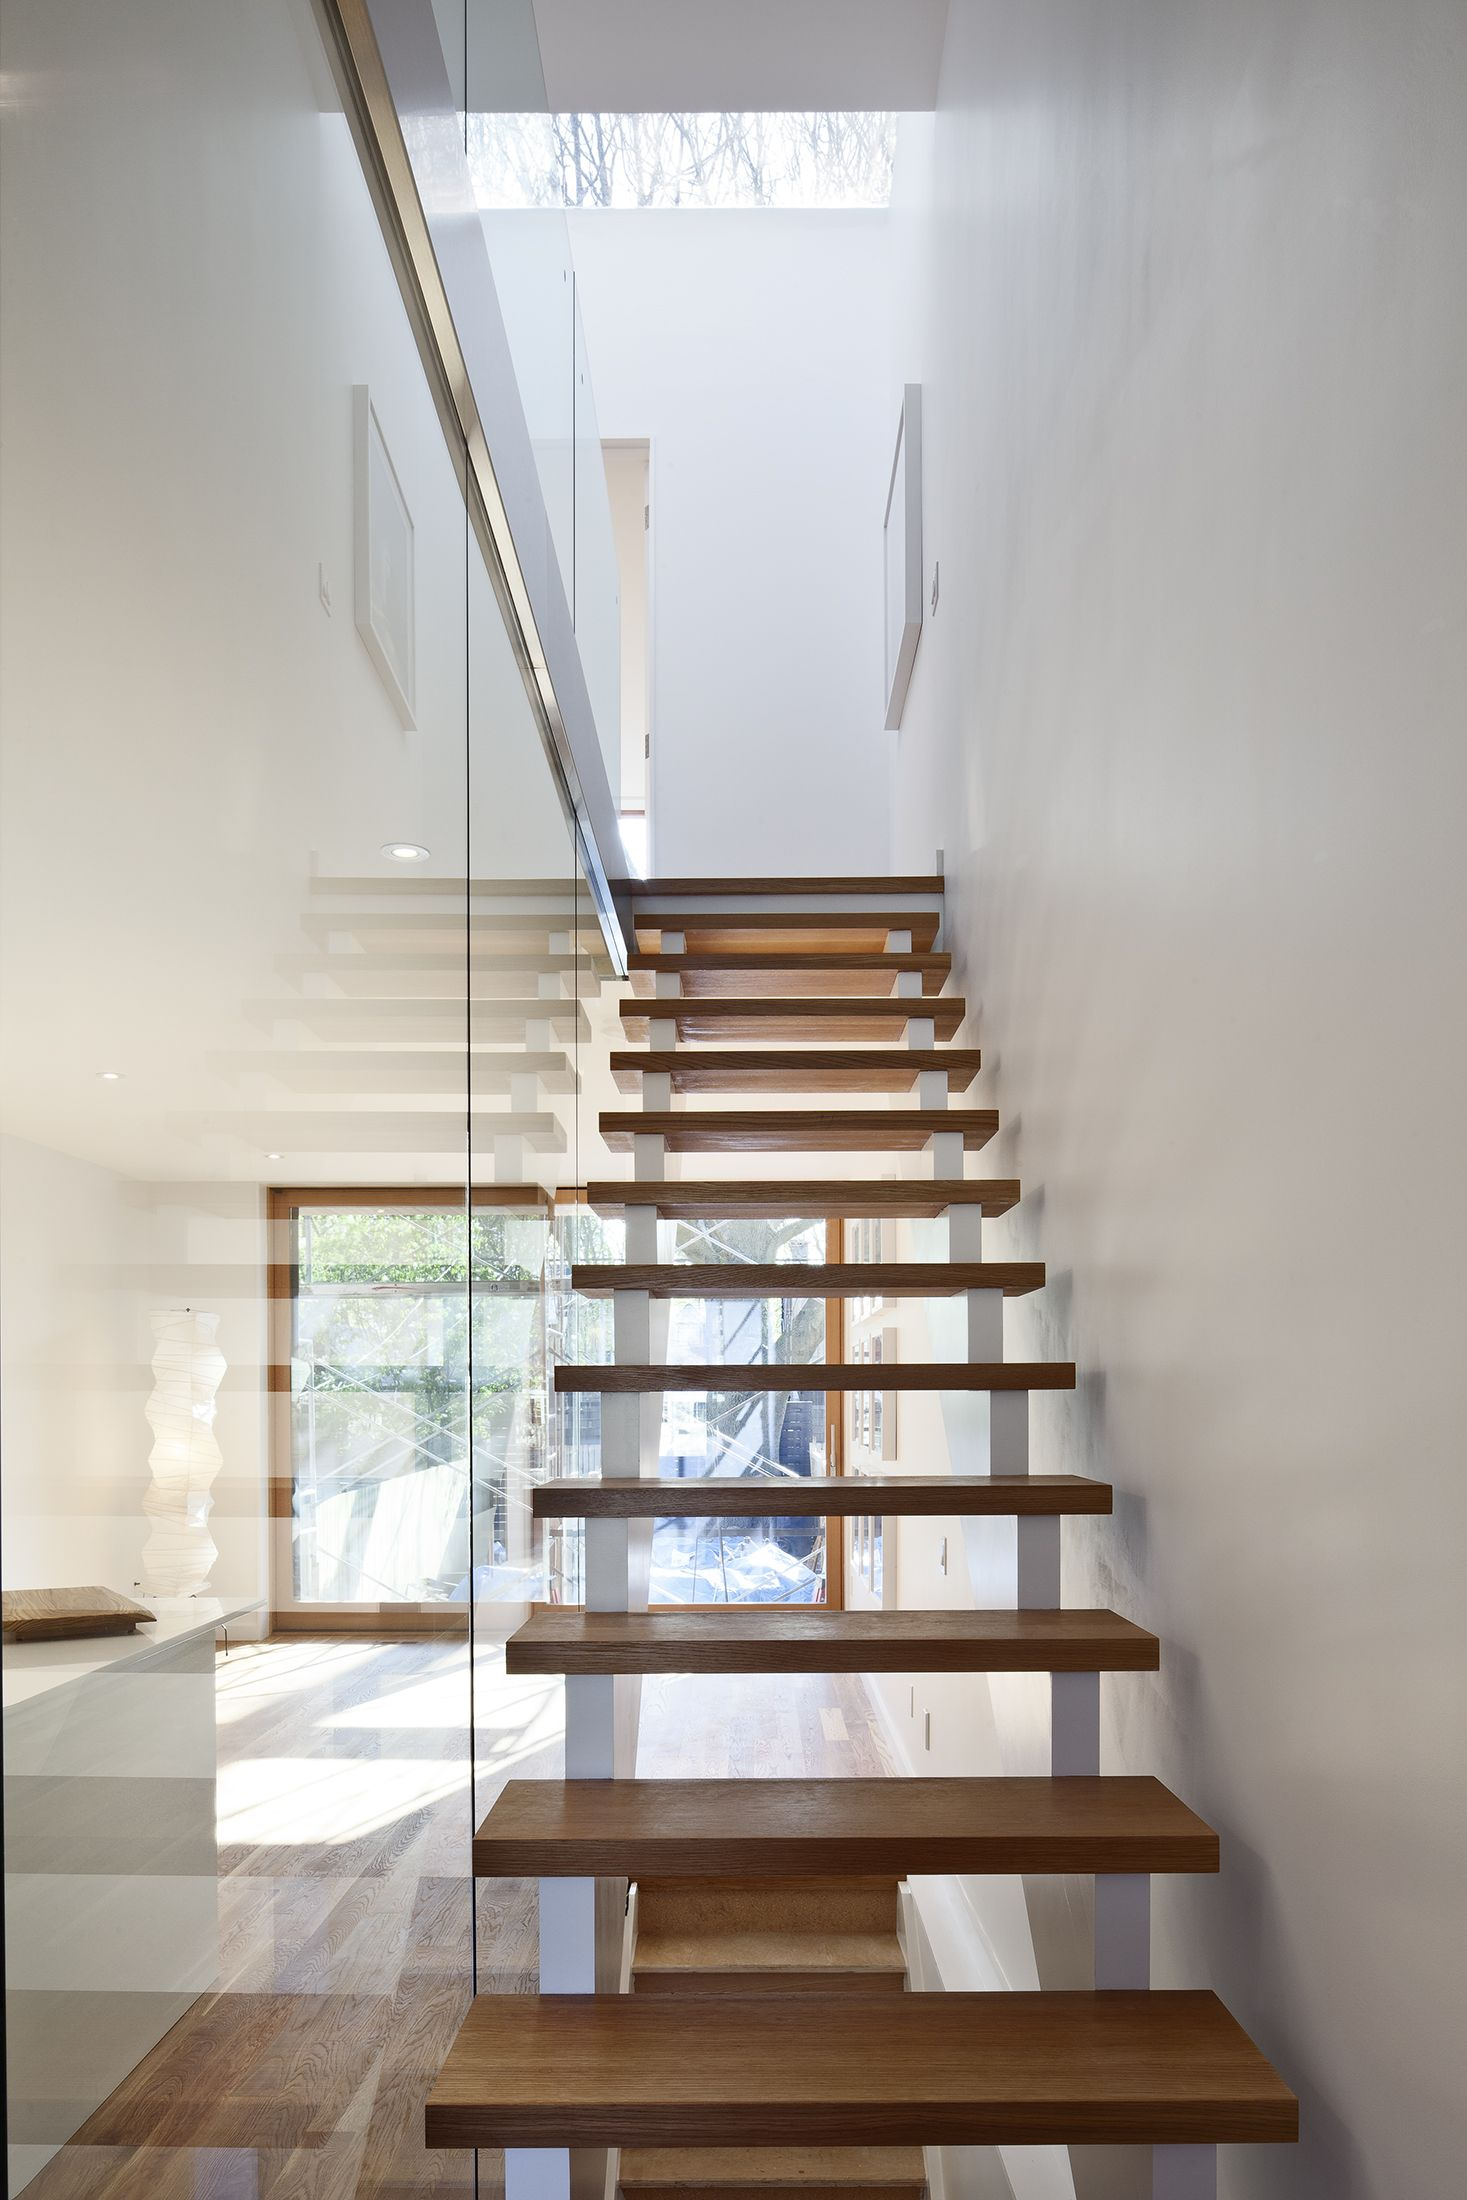 Modernest. Great stairs. I love this downtown Toronto home designed by architects Kyra Clarkson and Christopher Glaisek. Photographer: Steven Evans